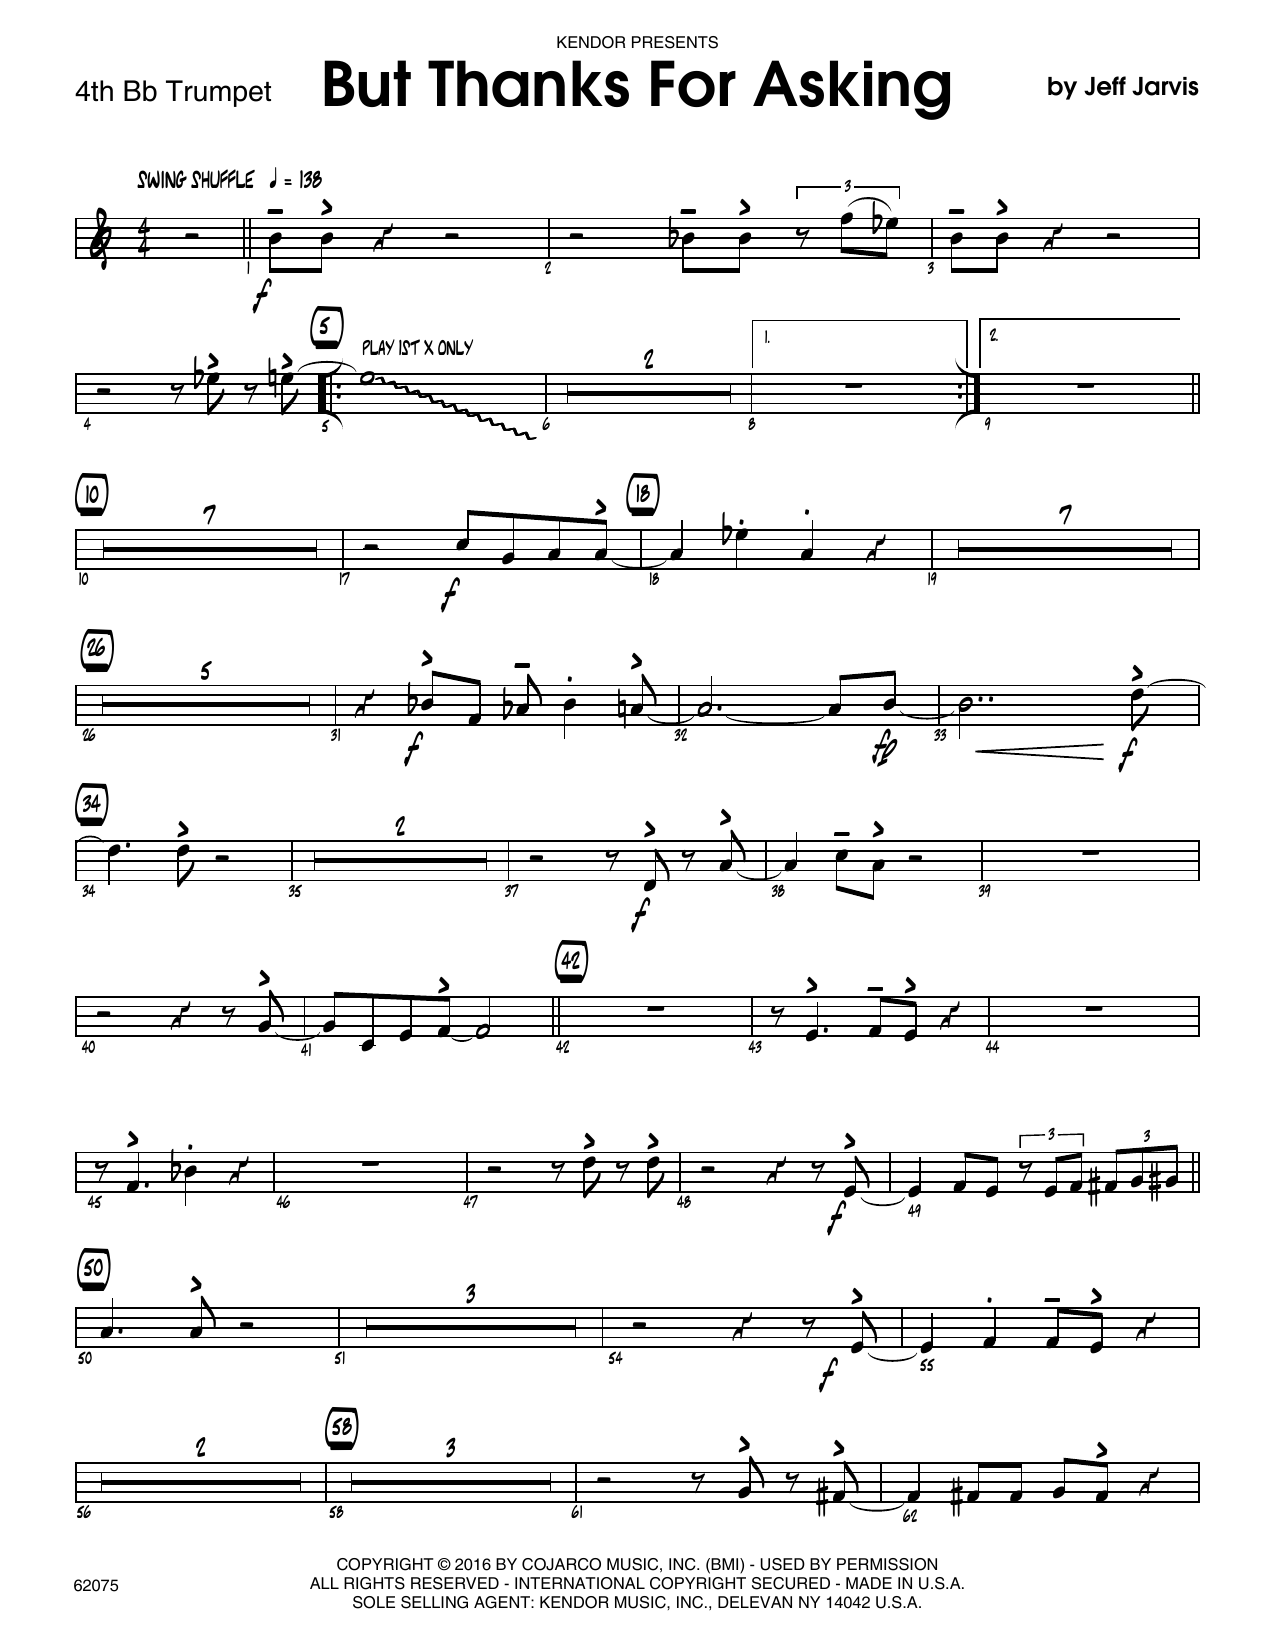 But Thanks For Asking - 4th Bb Trumpet Sheet Music